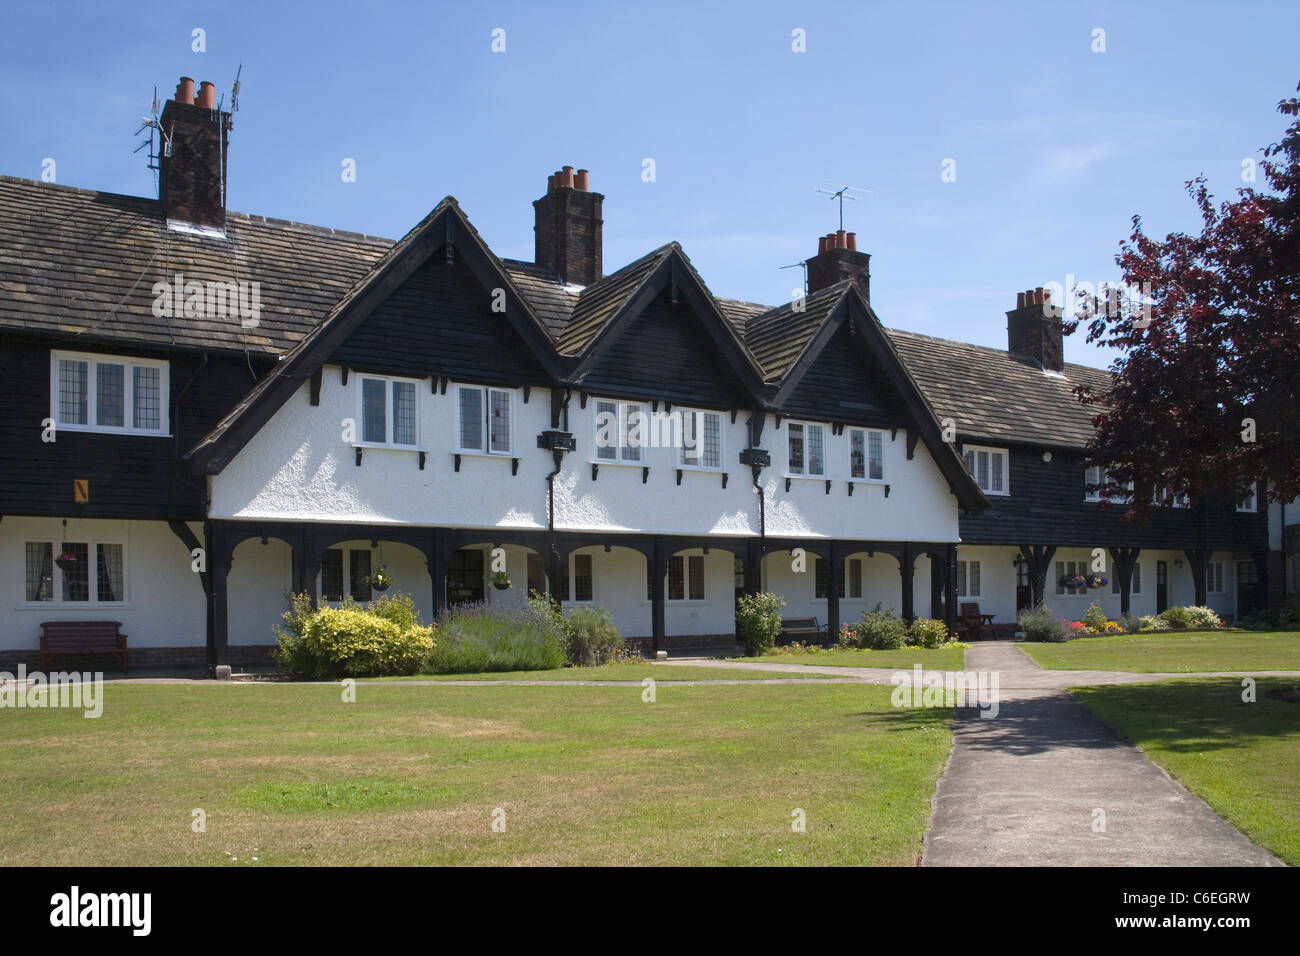 homes at port sunlight on the wirral - Stock Image